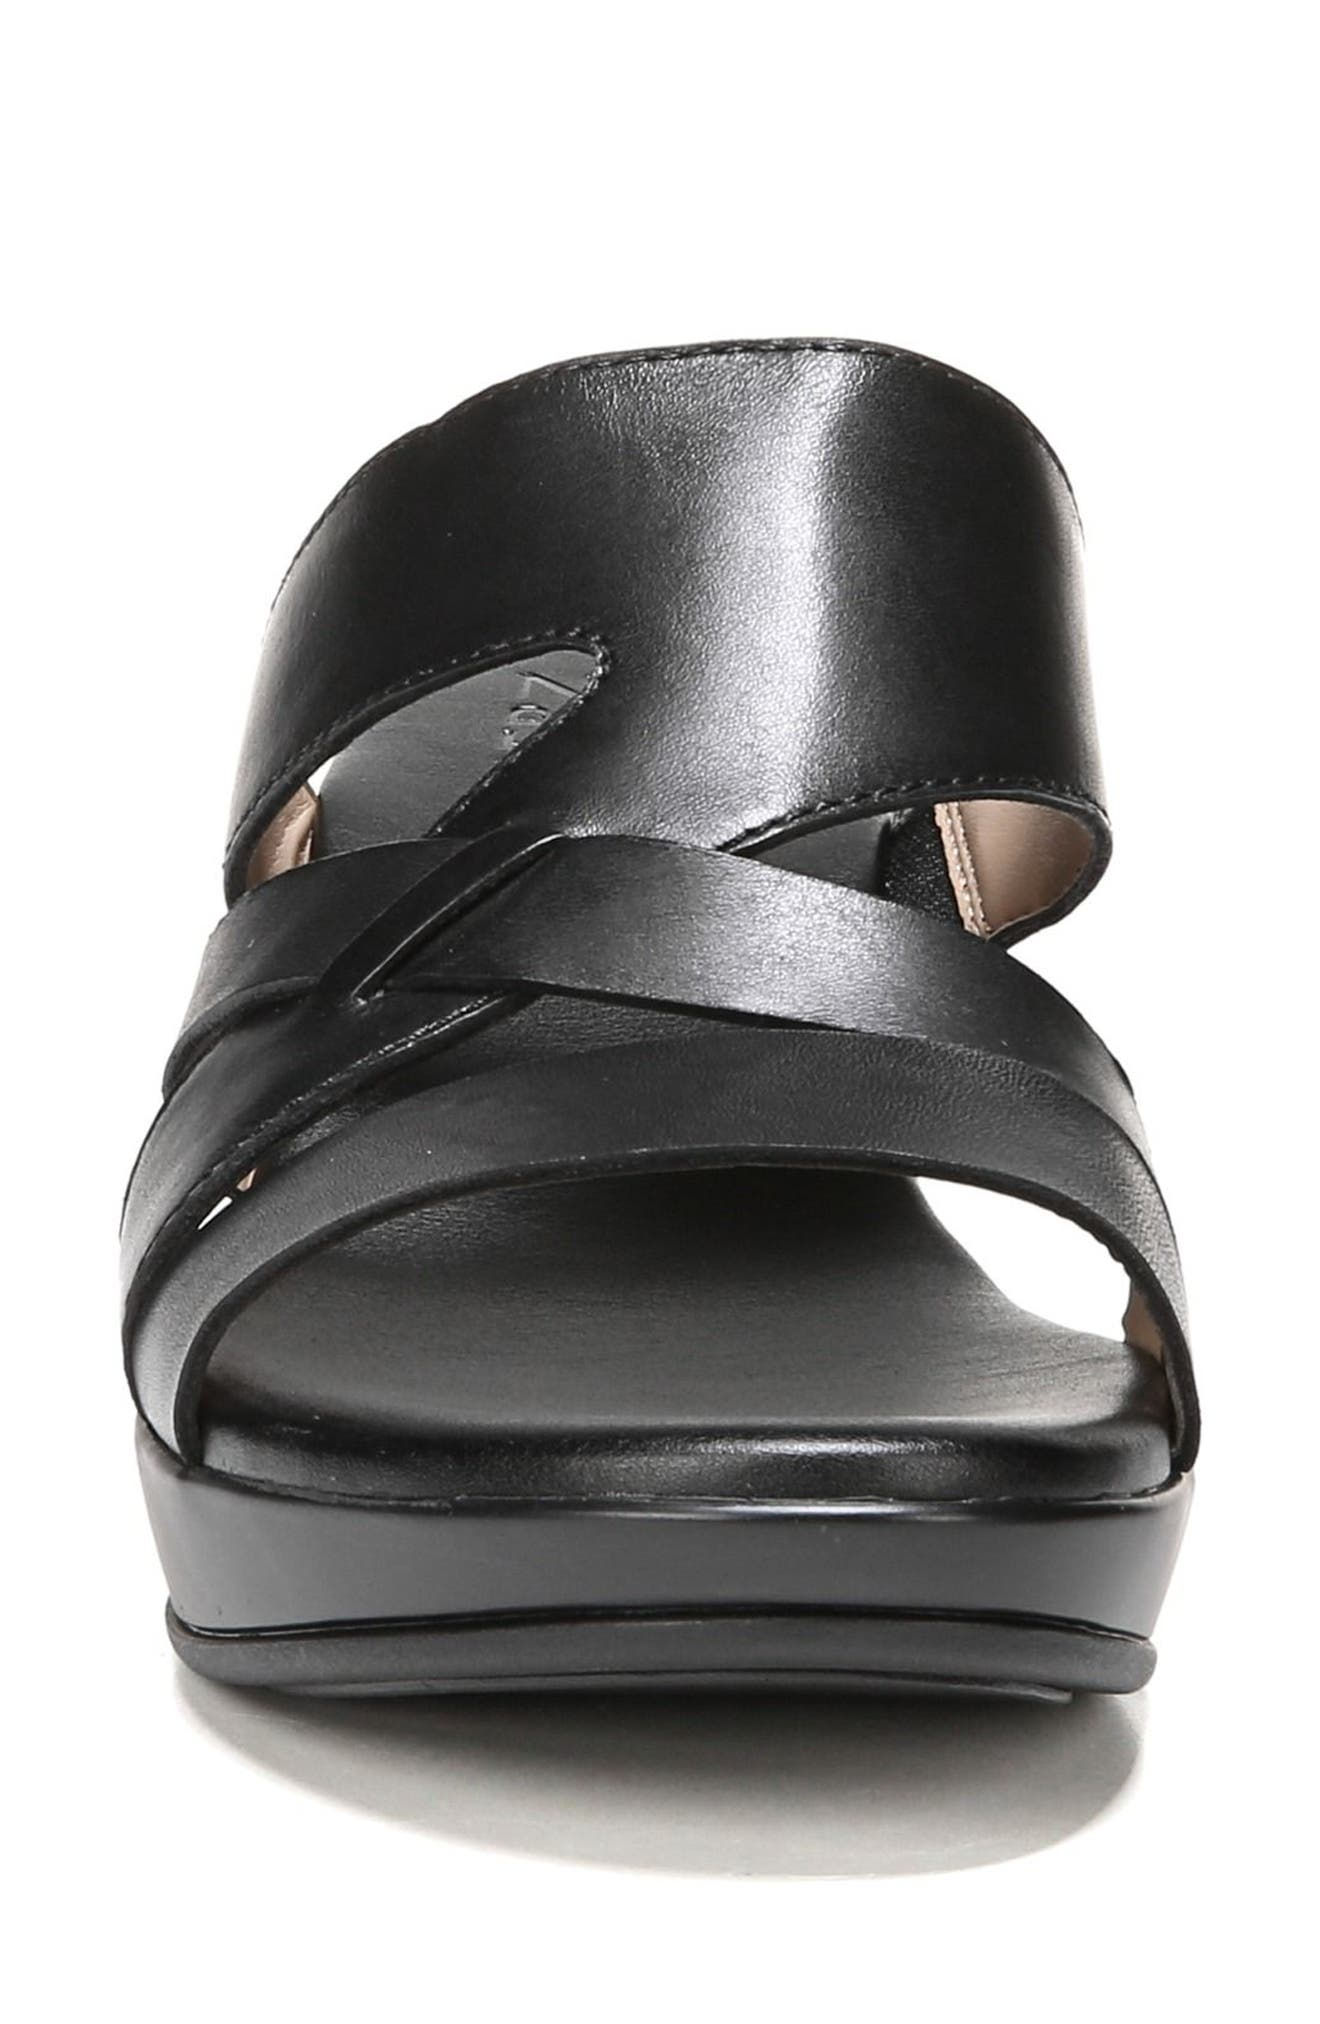 Vivy Wedge Sandal,                             Alternate thumbnail 4, color,                             Black Leather